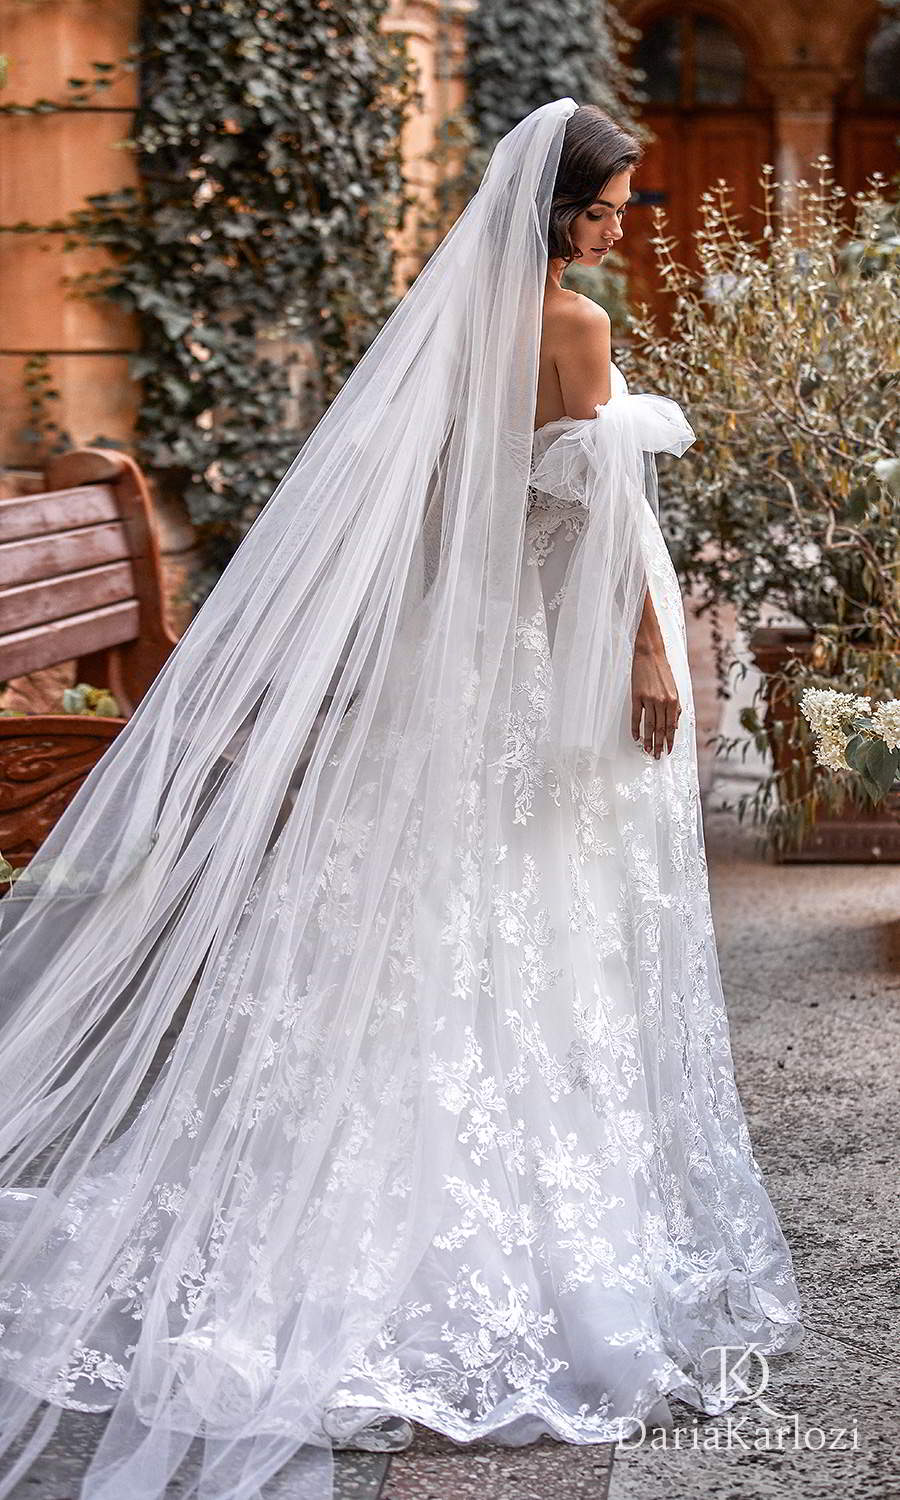 daria karlozi 2021 graceful dream bridal off shoulder straps sweetheart neckline ruched bodice lace skirt a line ball gown wedding dress chapel train (wings of love) bv